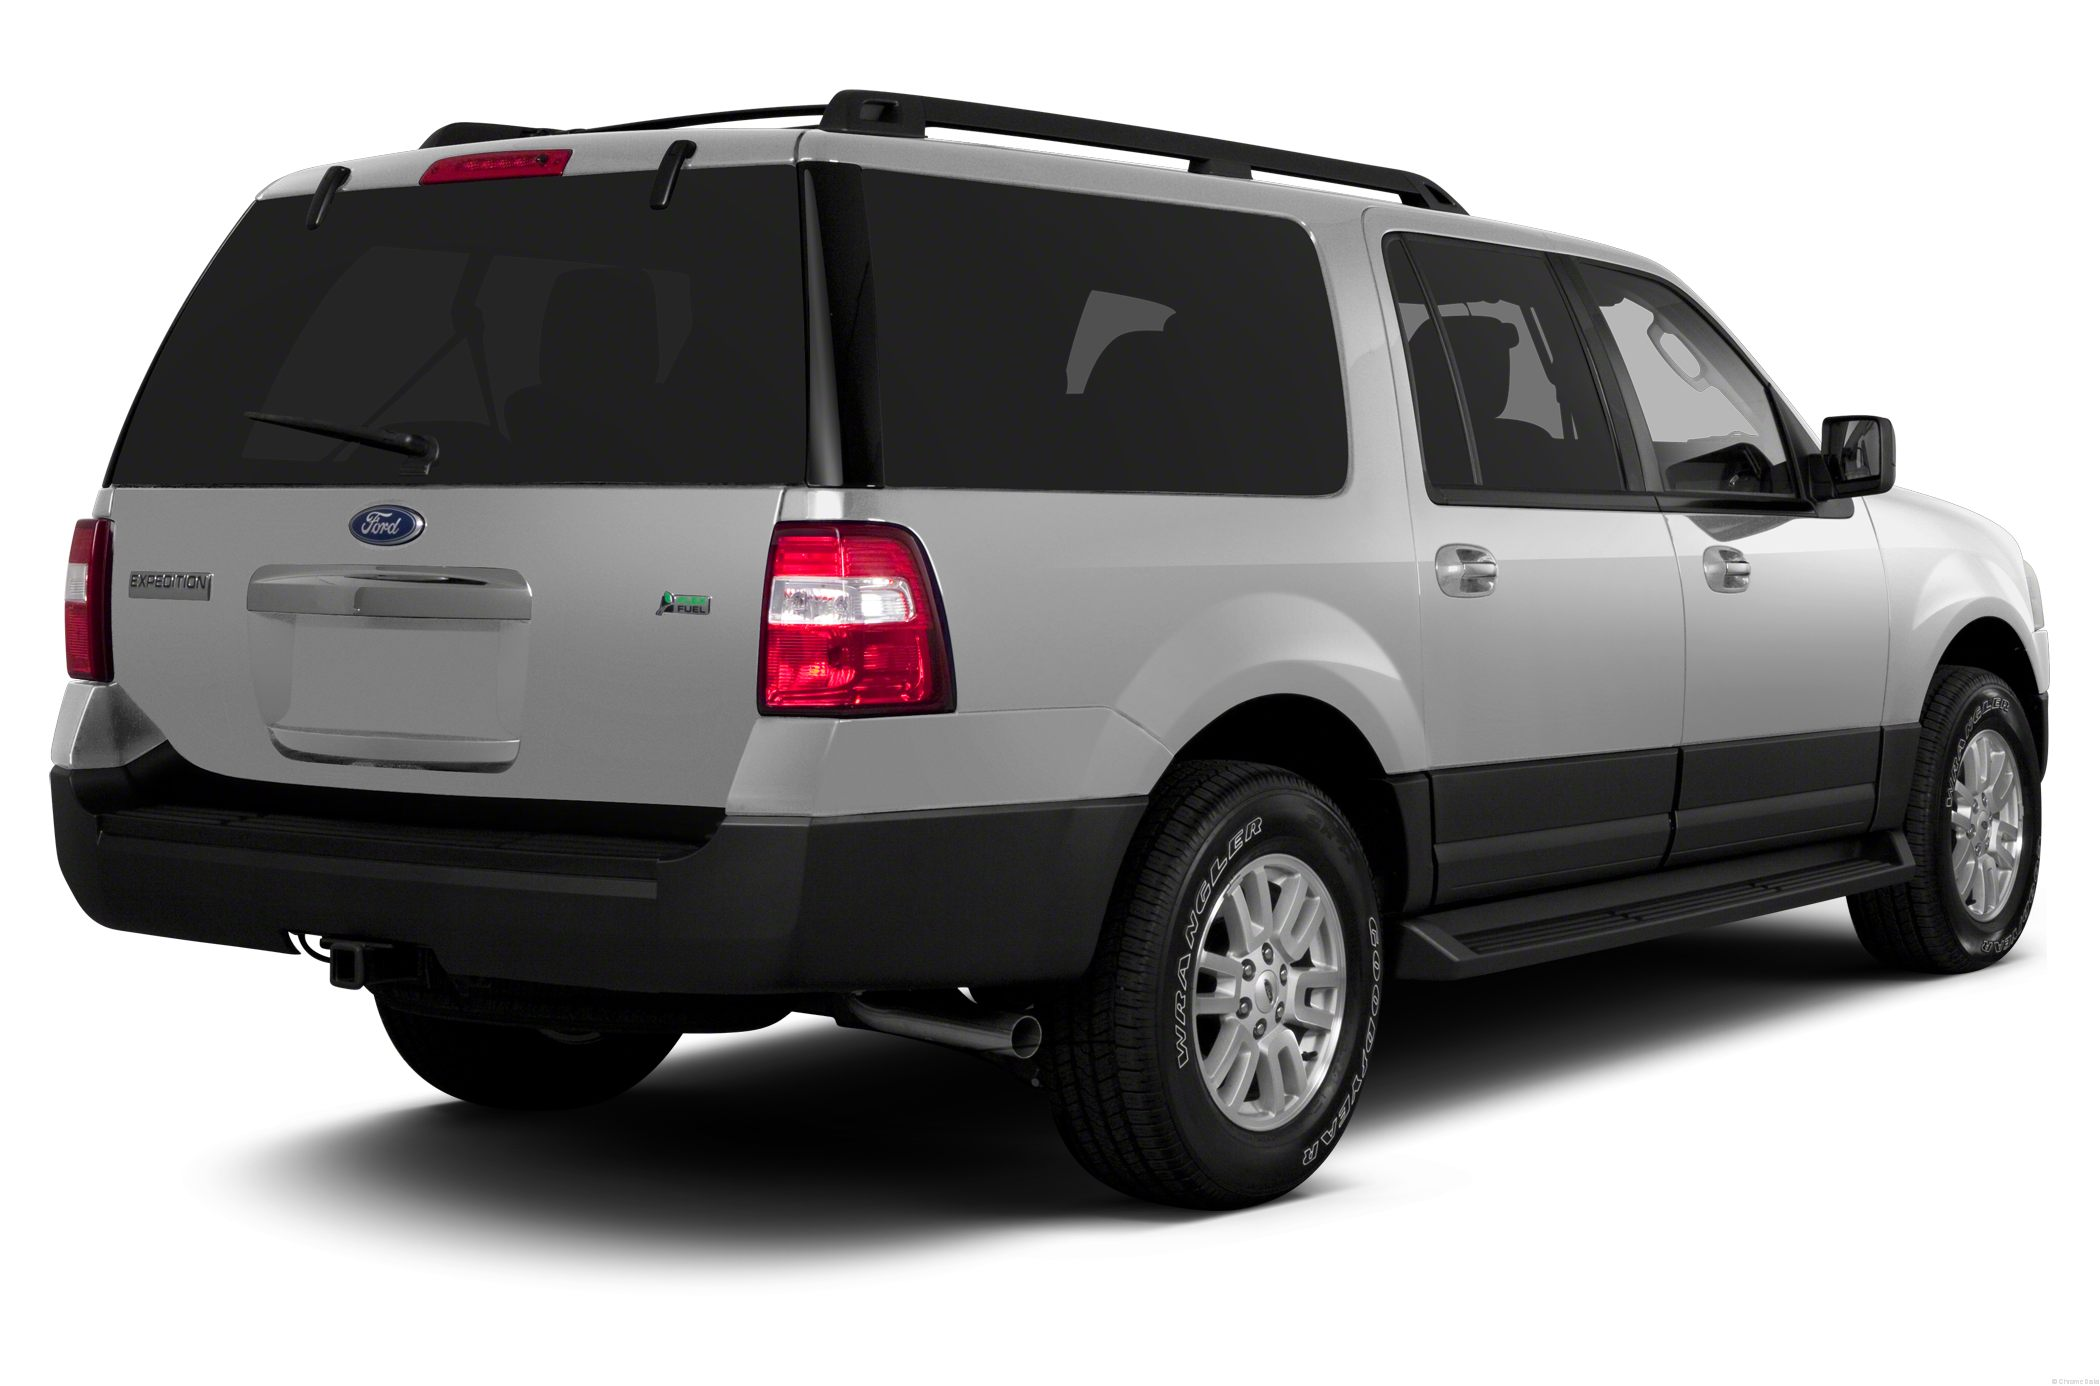 Ford Expedition #17